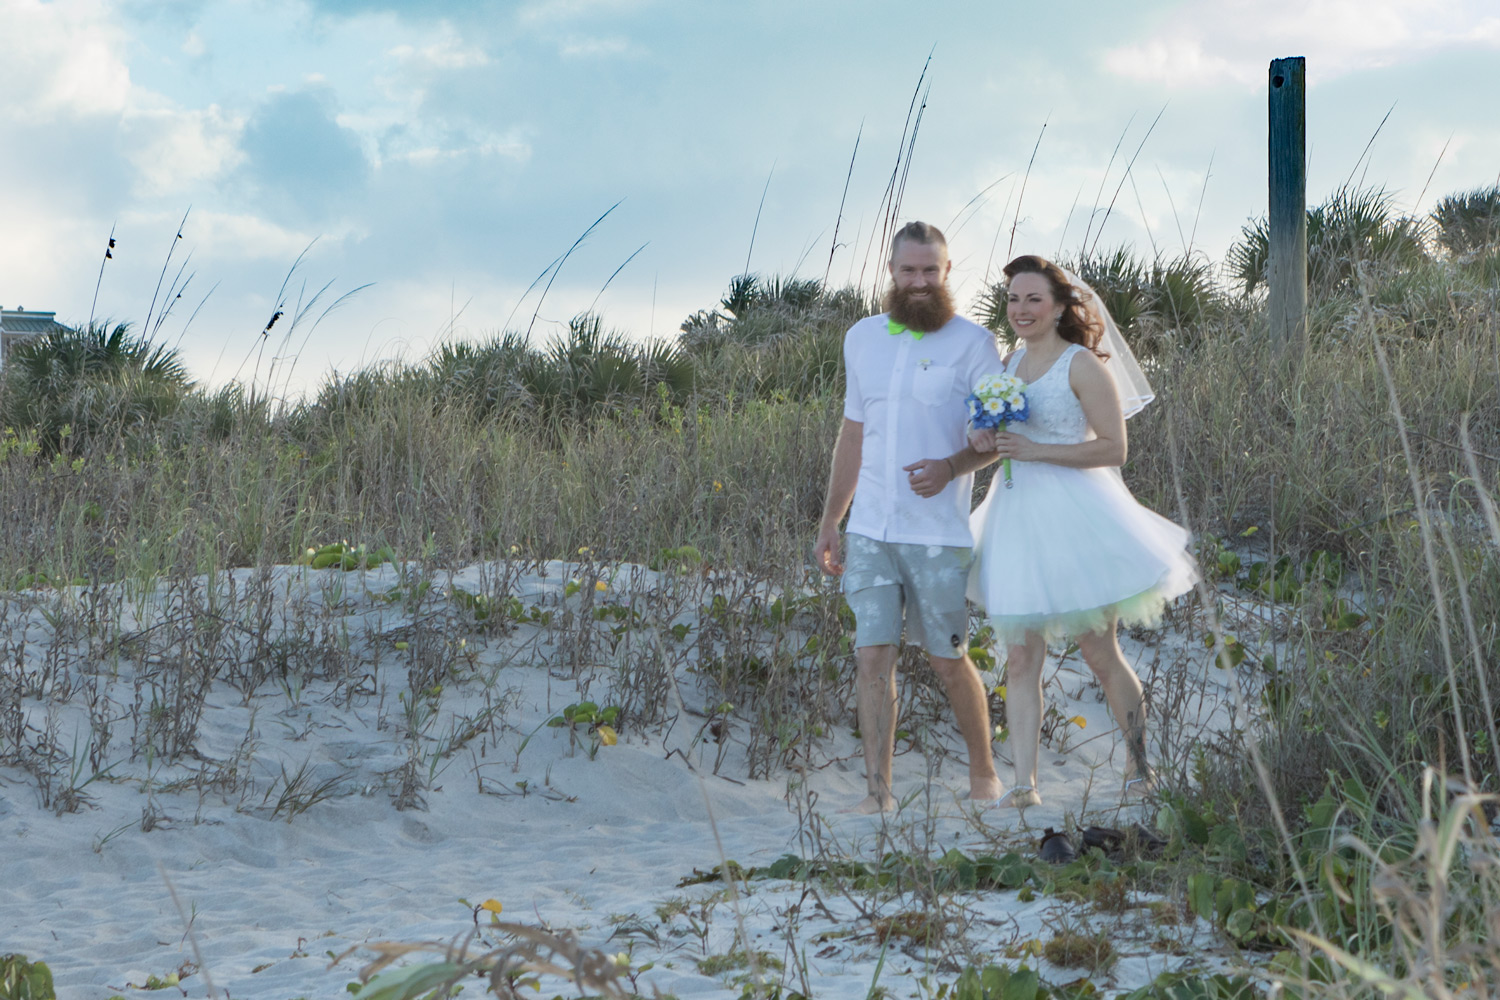 beach_wedding-1765-1.jpg